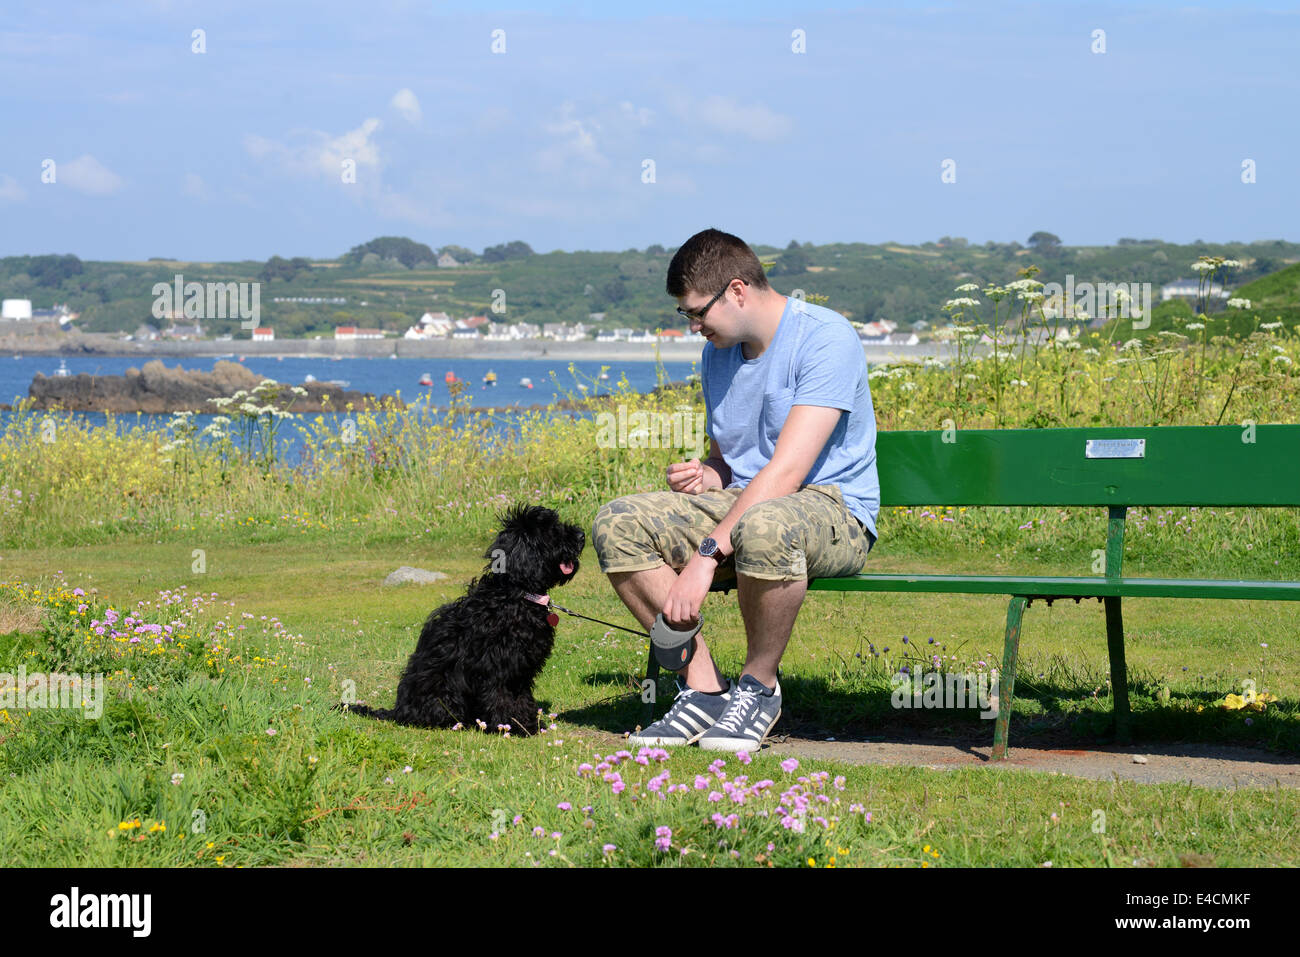 Man sat on bench with Cockapoo dog - Stock Image